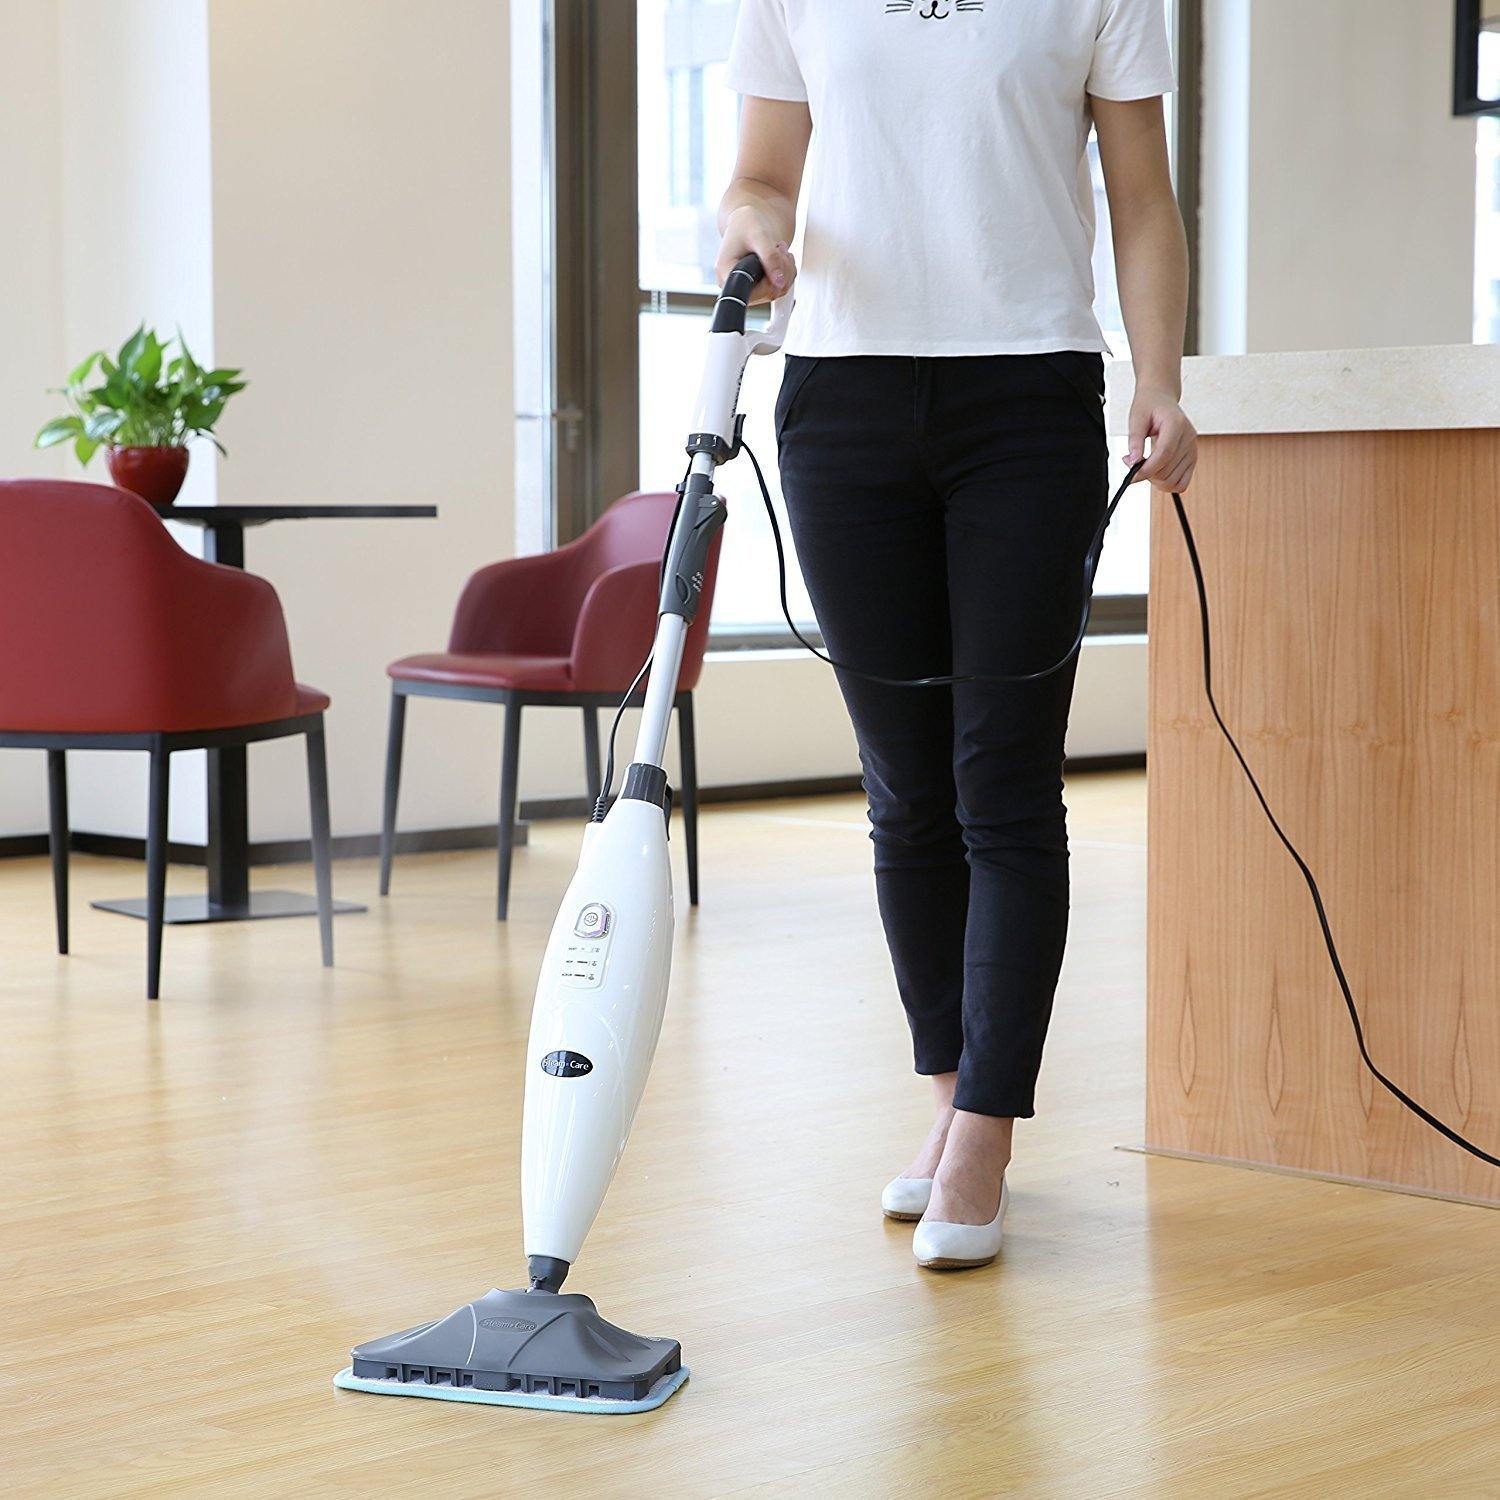 INLIFE Steam Mop with Adjustable SteamReview